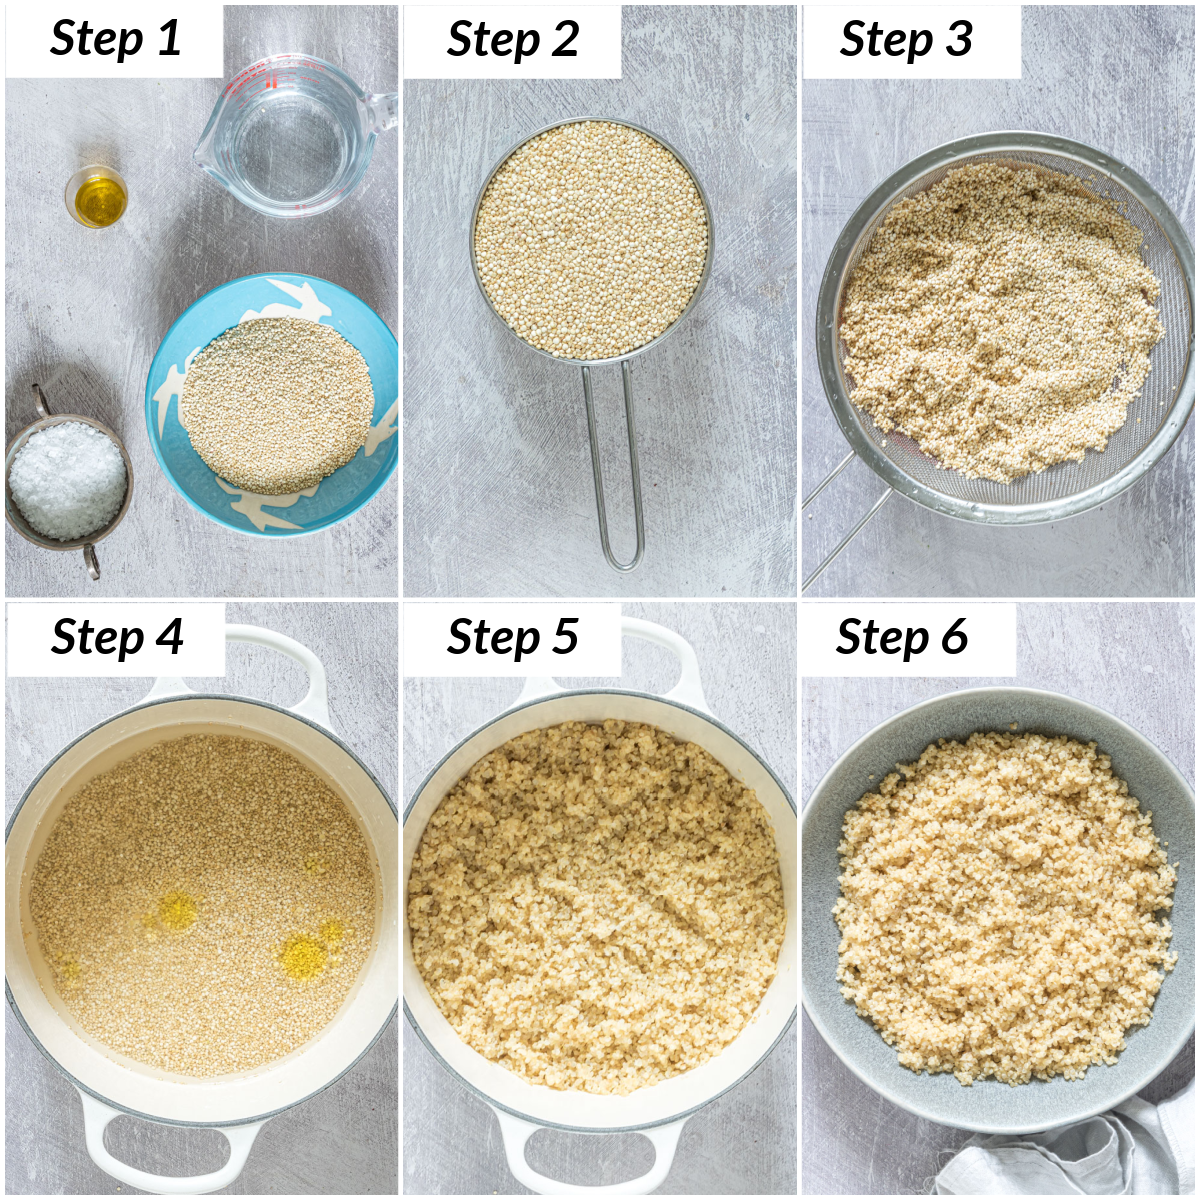 image collage showing the steps for learning how to cook quinoa